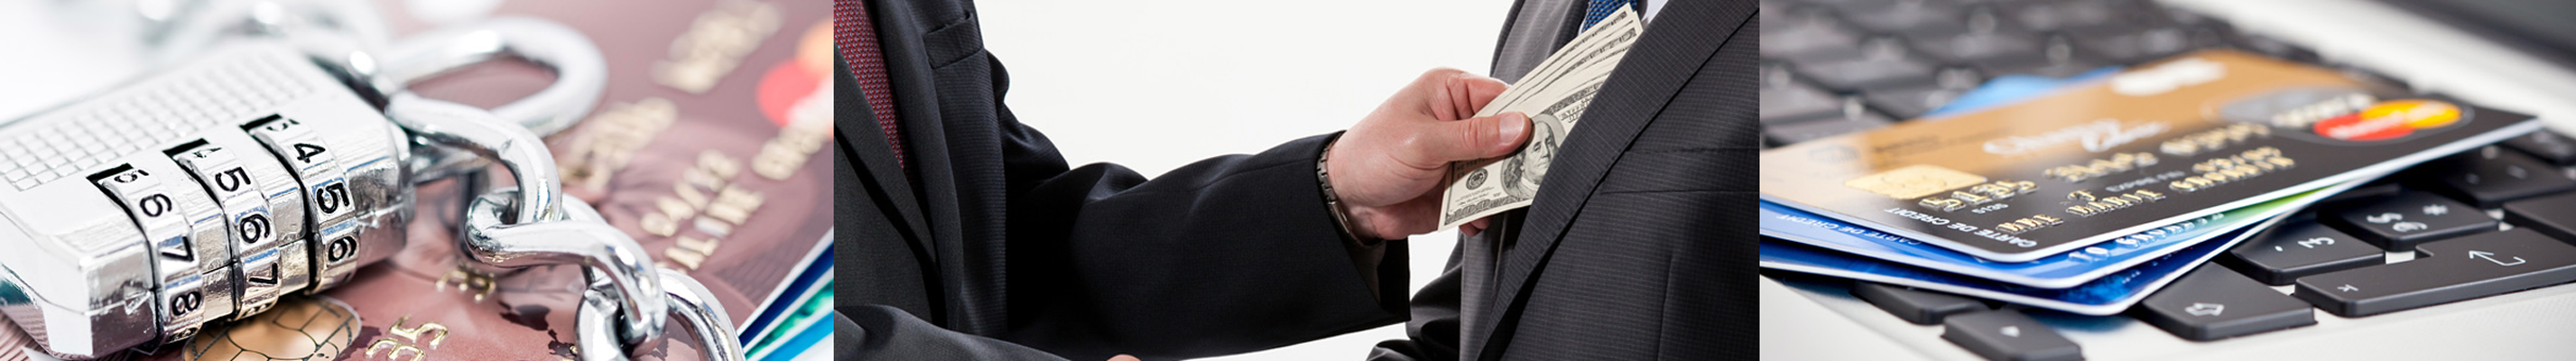 Wipe out fraud in your company